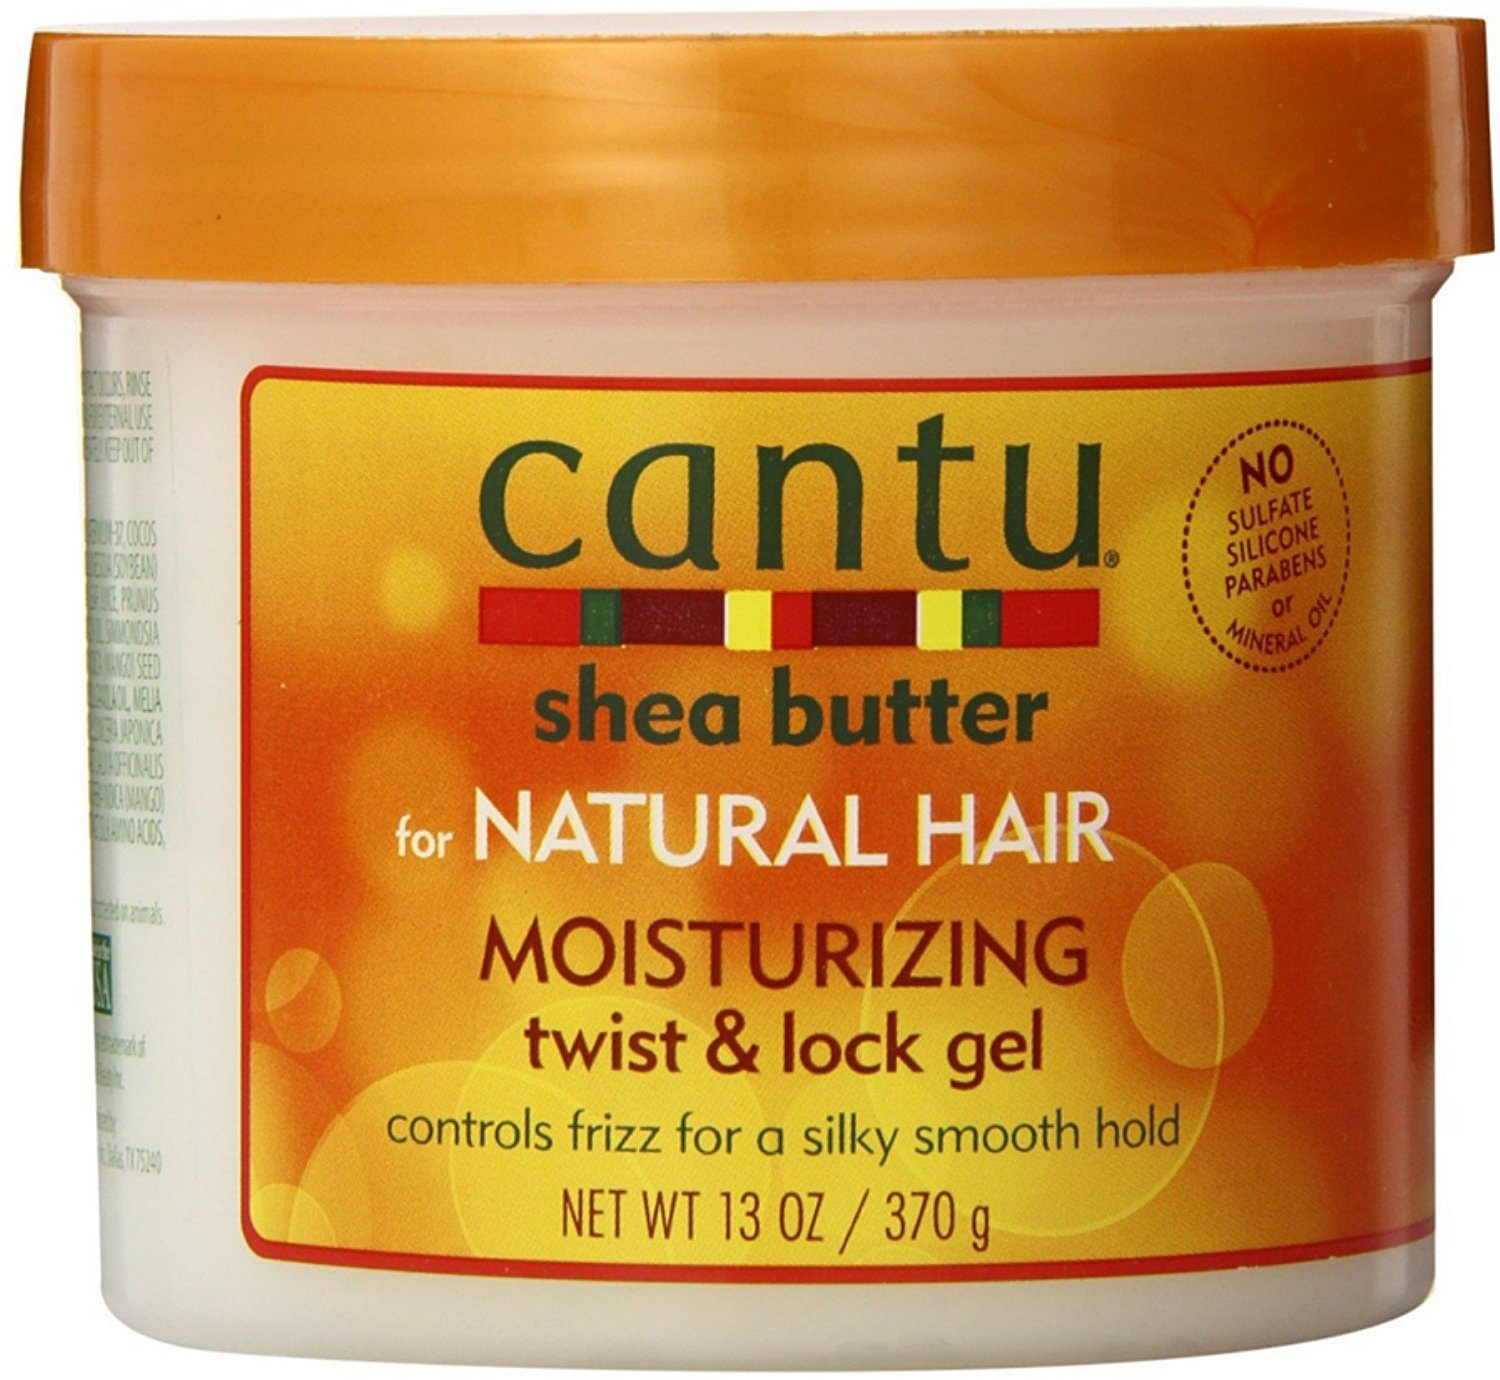 Amazon.com : Cantu Shea Butter For Natural Hair Moisturizing Twist & Lock Gel, 13 ounce (Pack of 5) : Beauty